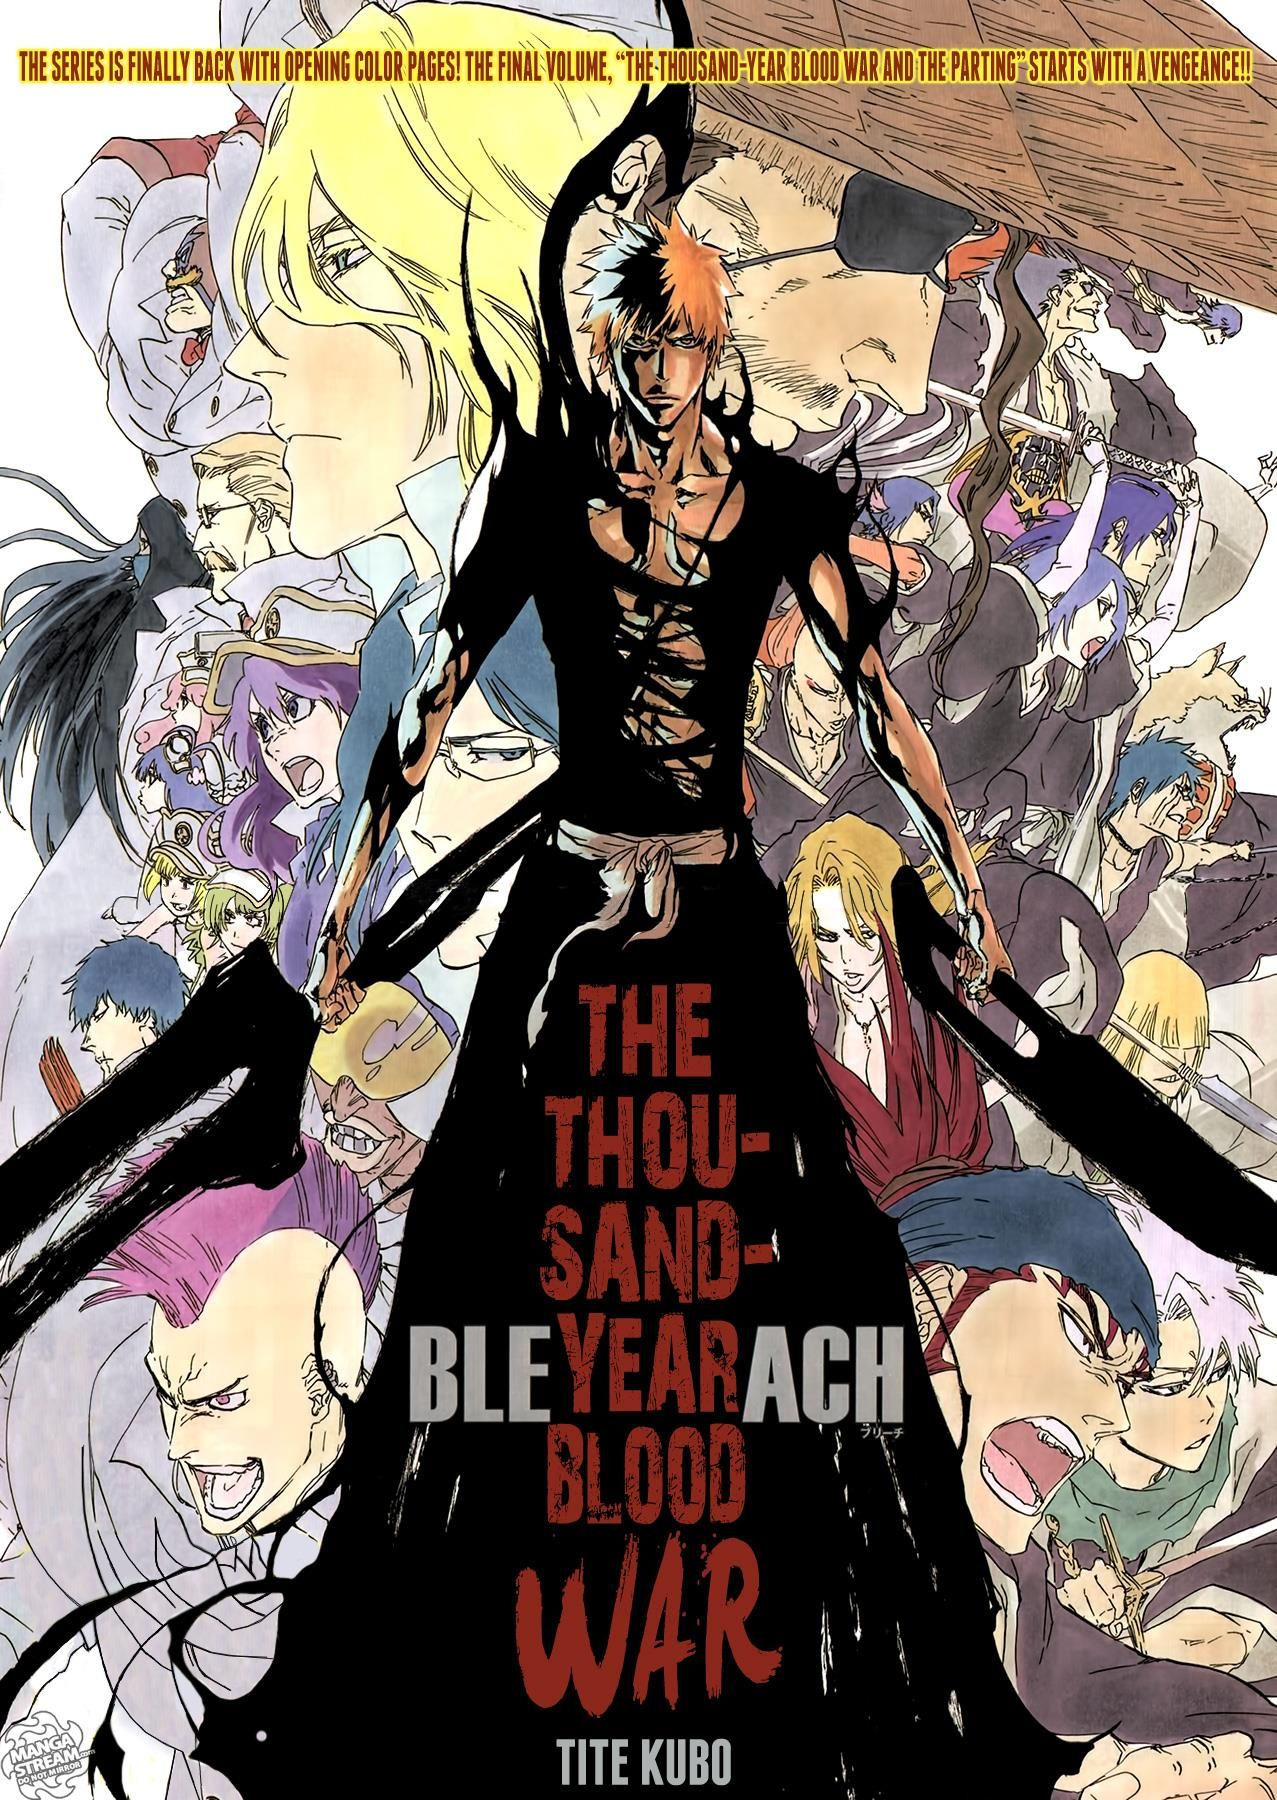 Image result for bleach one thousand years blood war